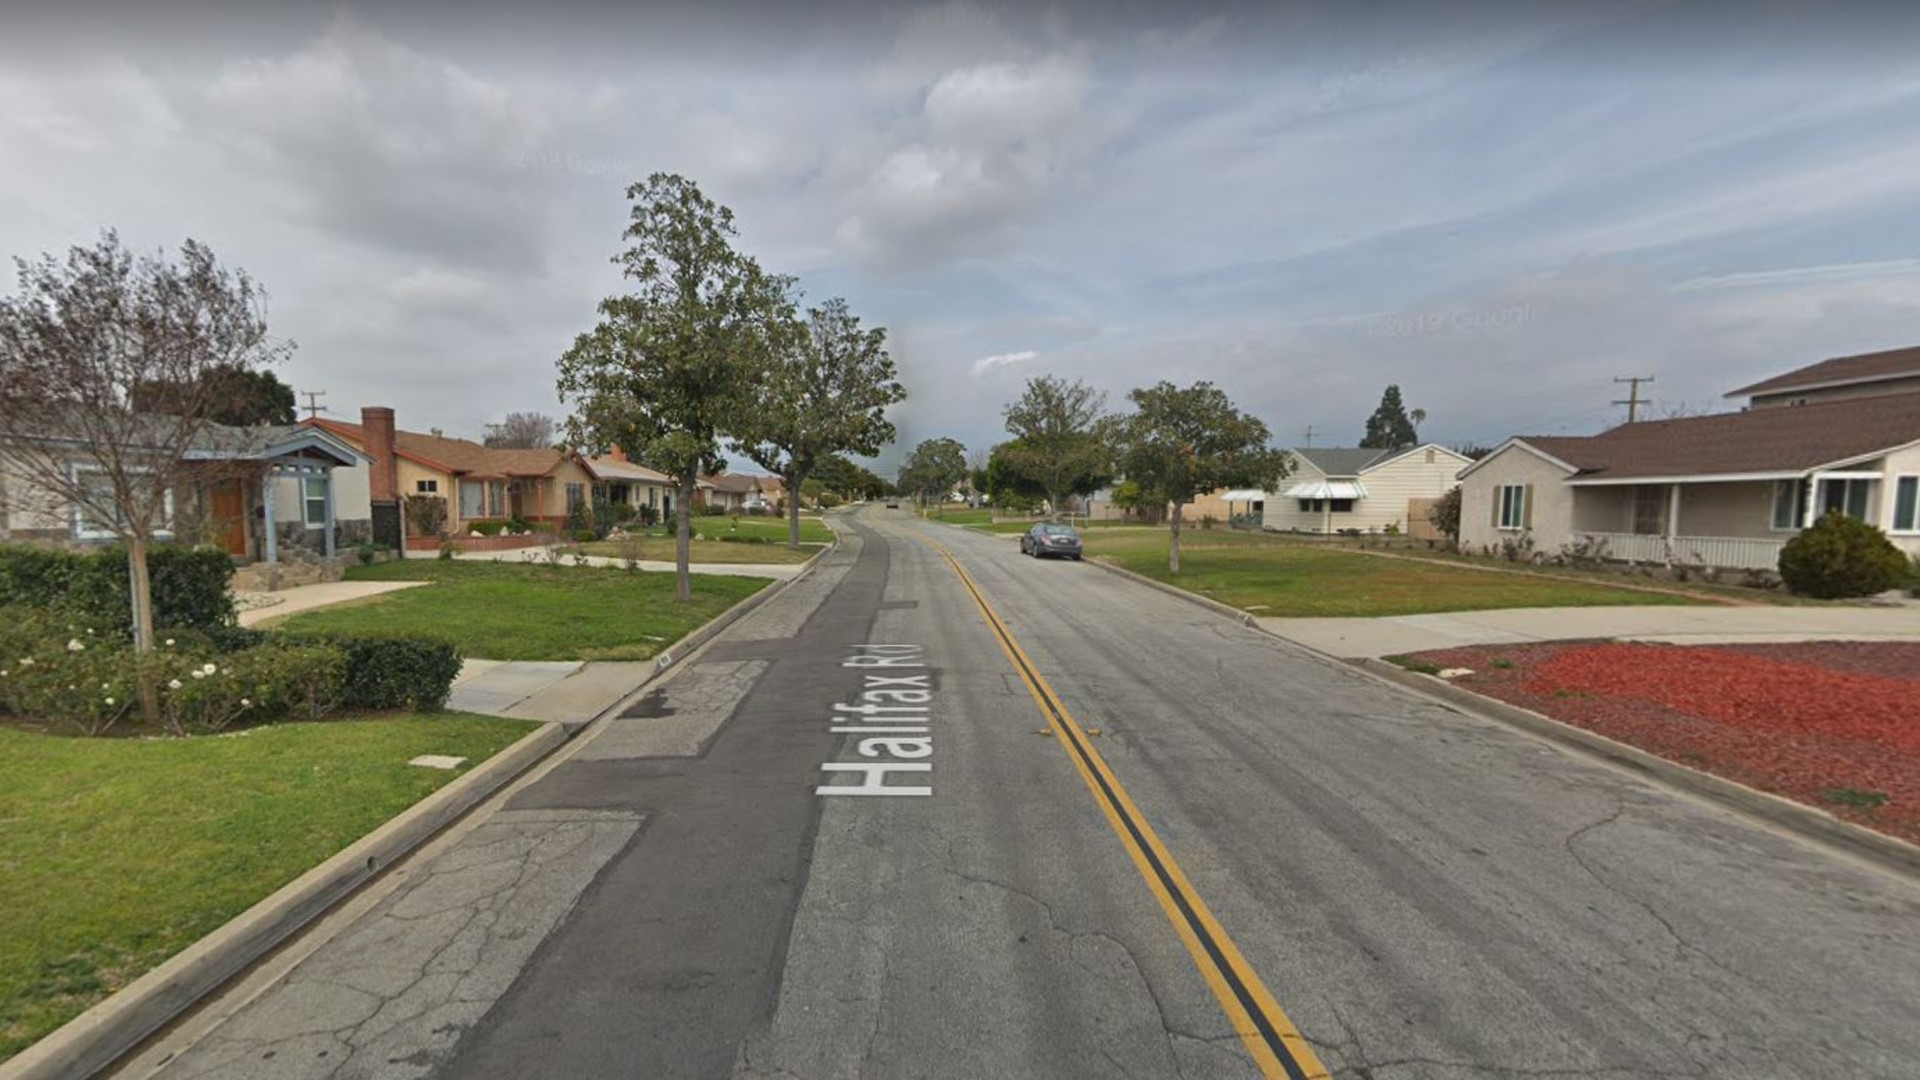 The 4900 block of Halifax Road in Temple City, as viewed in a Google Street View image.